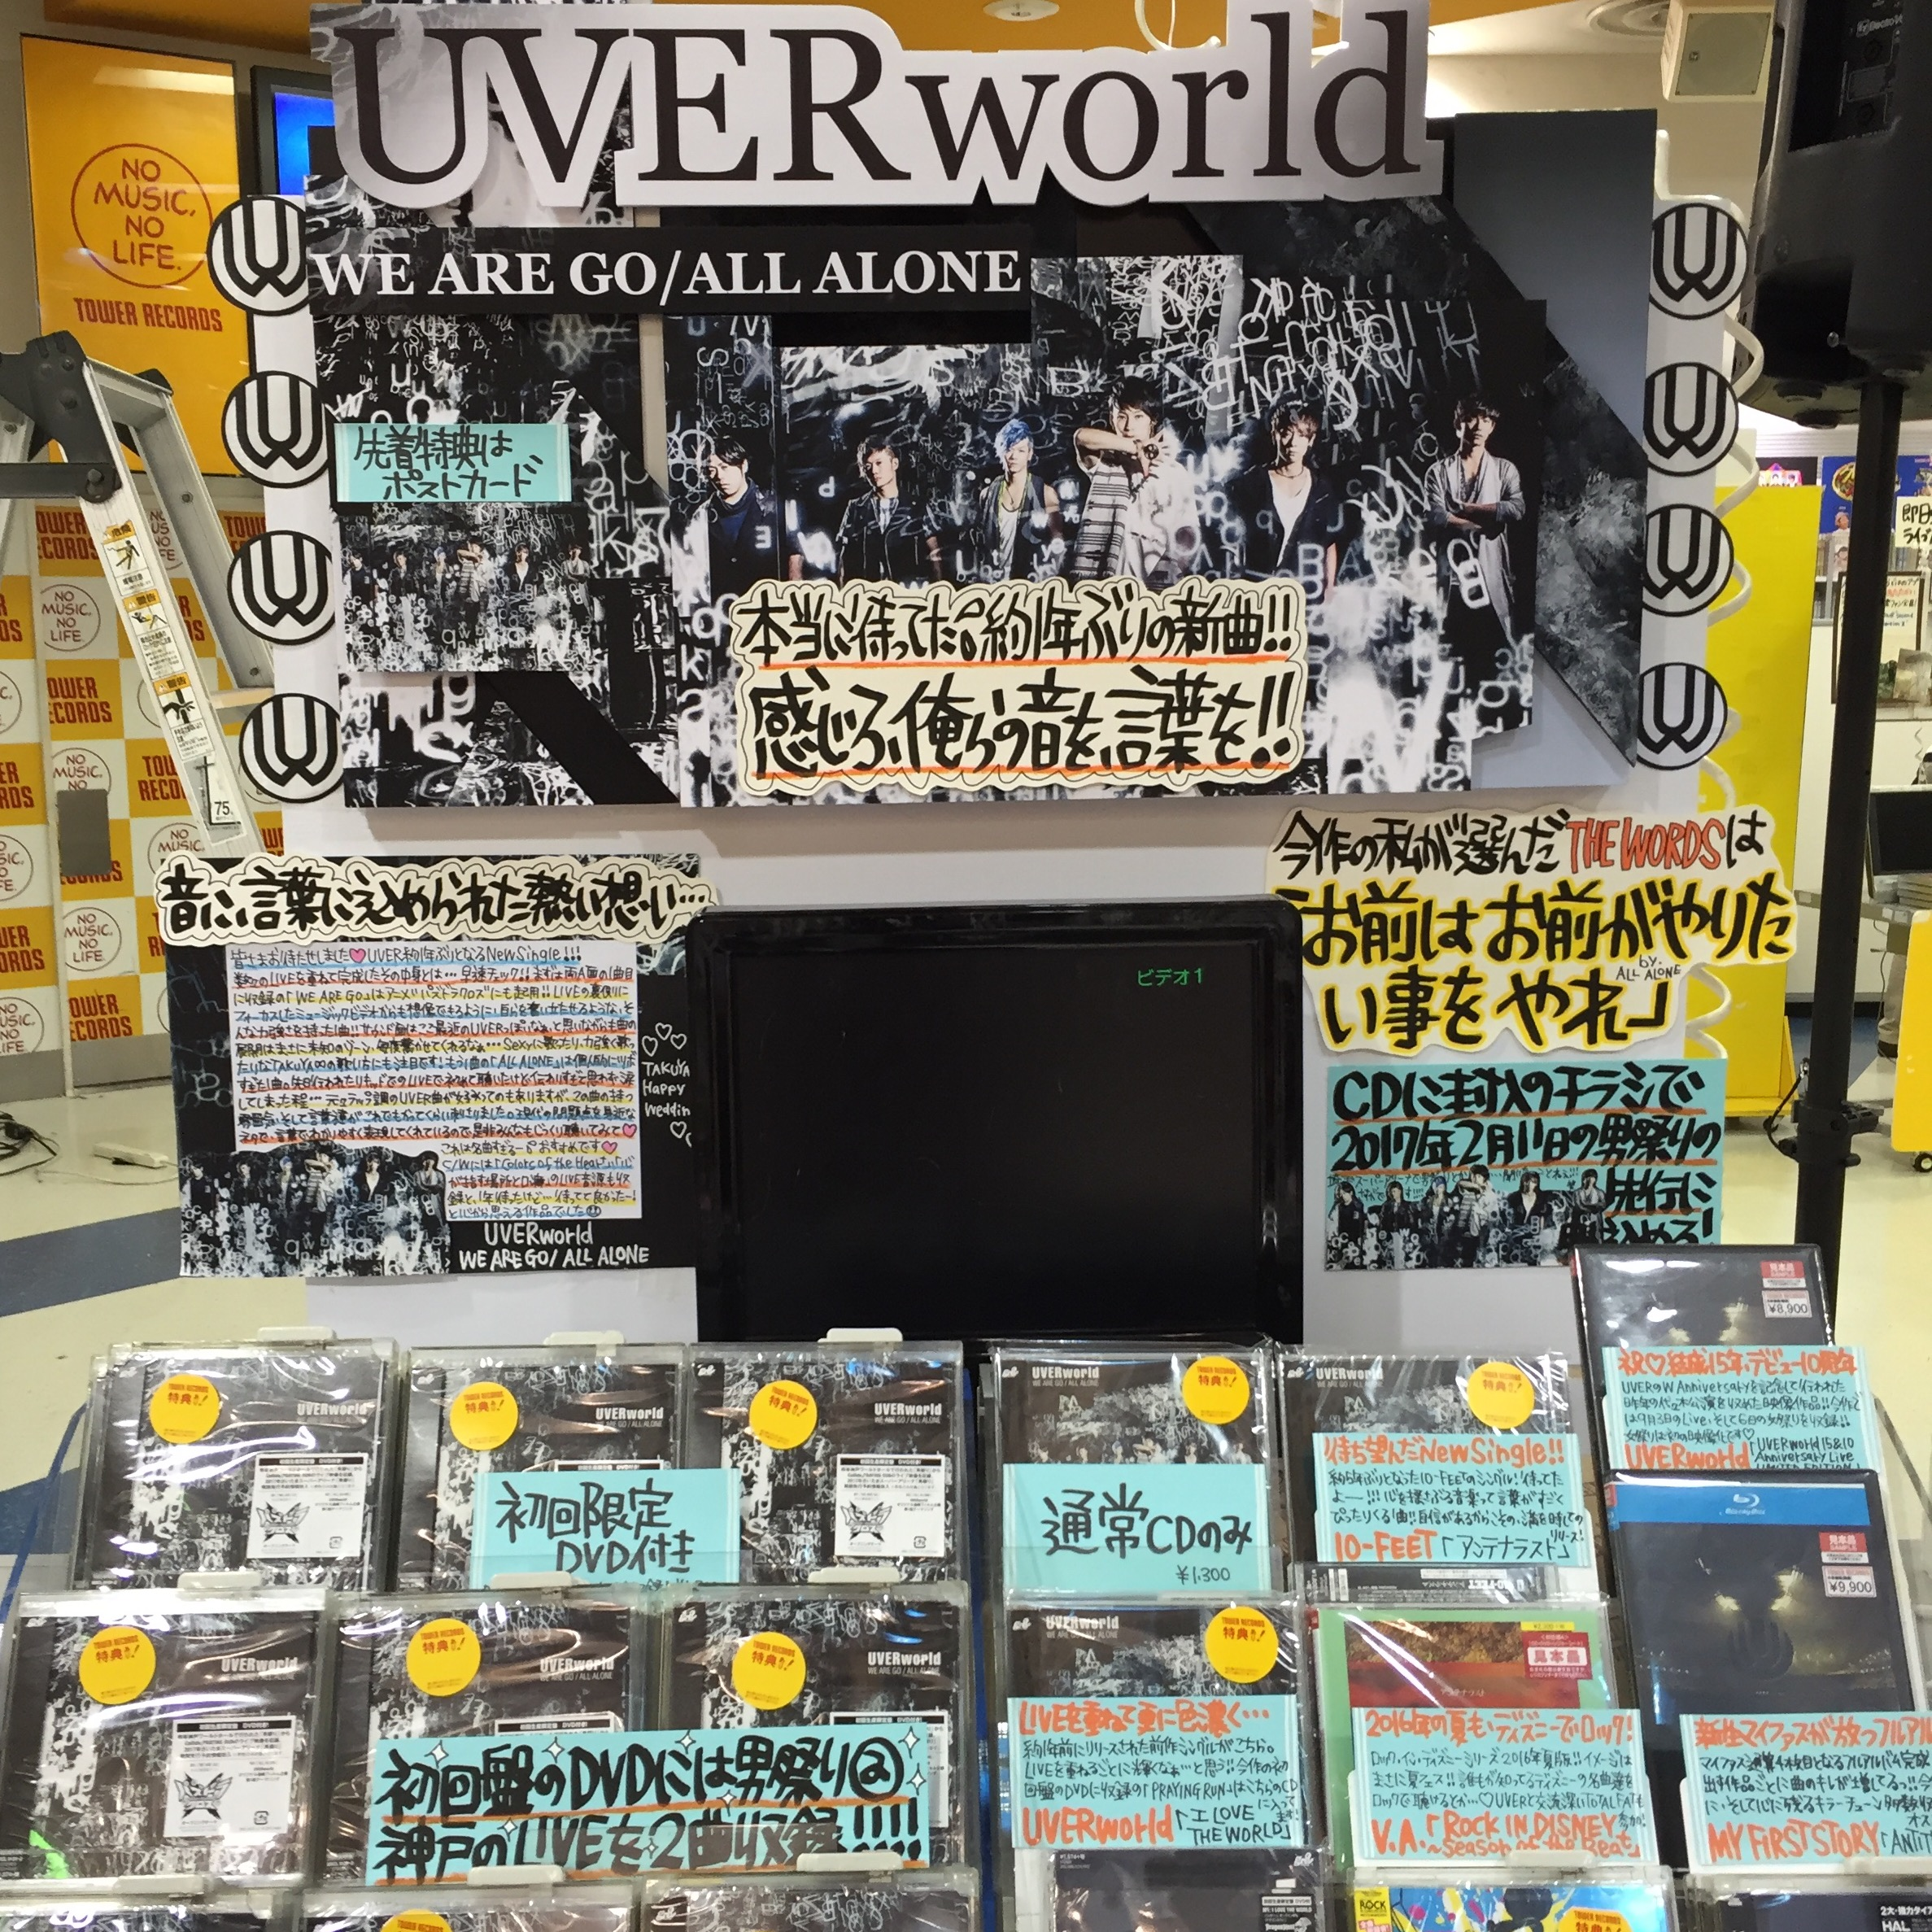 uverworld-we-are-go-all-alone-new-single-cd-release-20160727